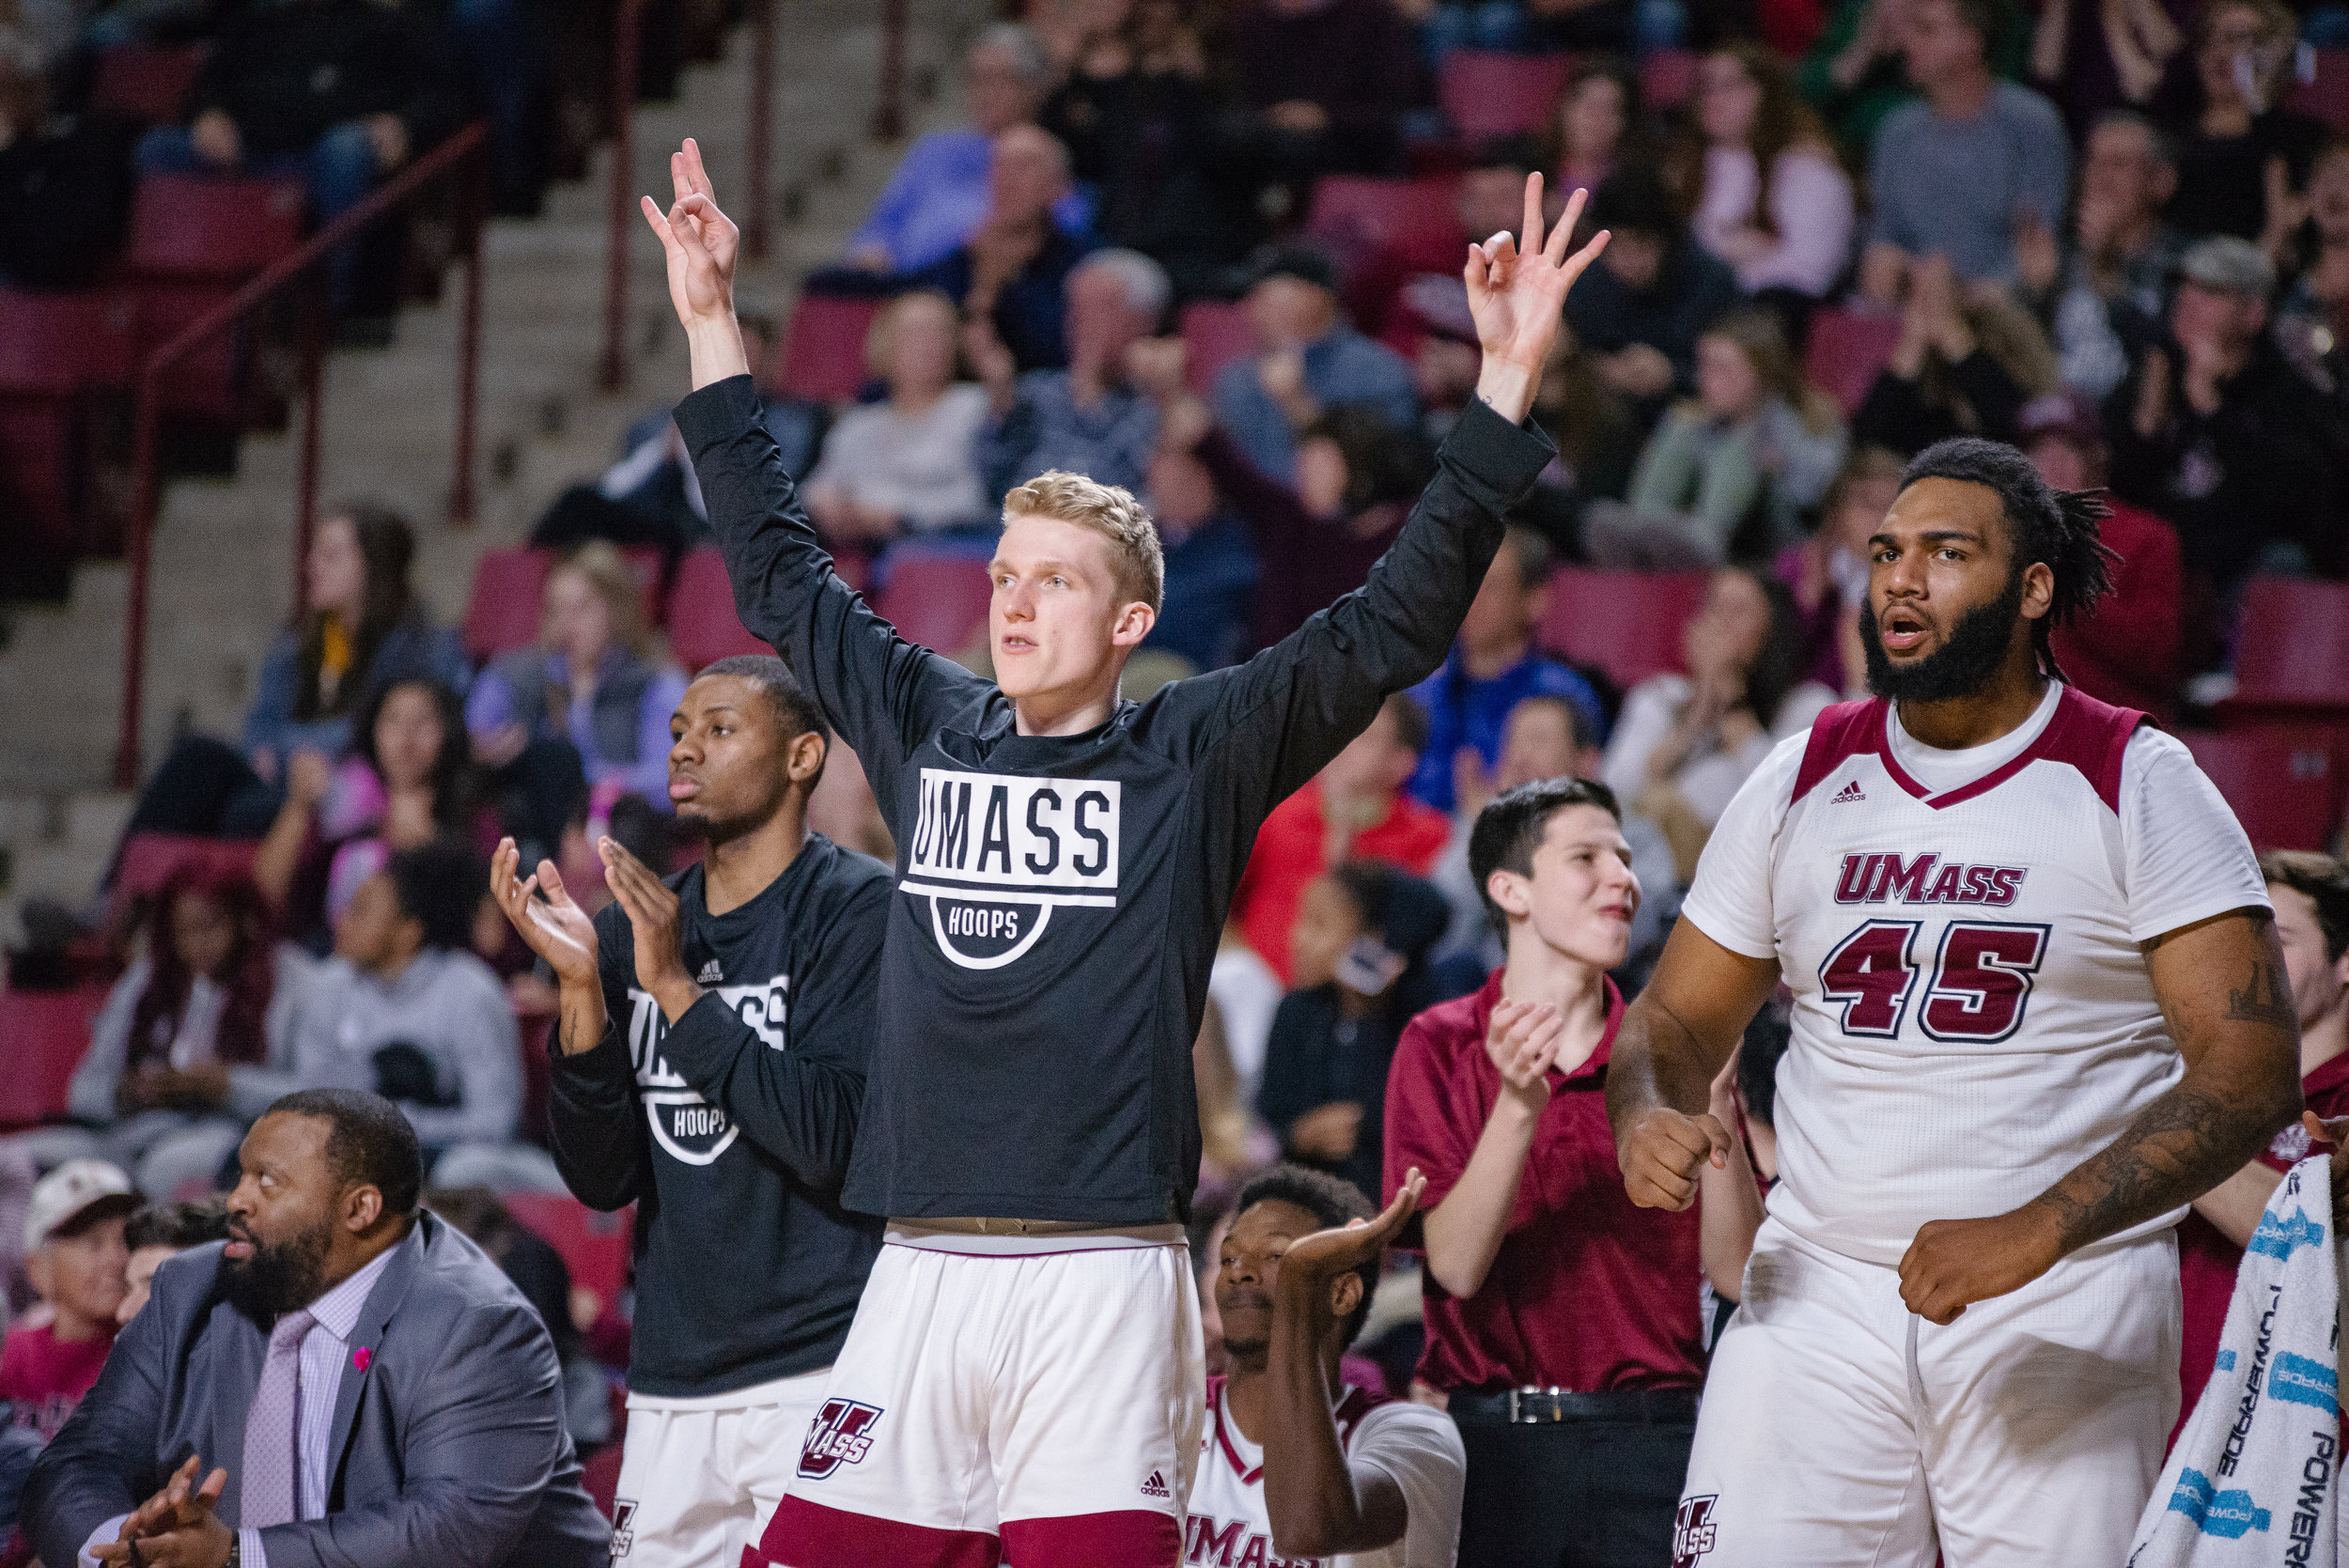 UMass Men's Basketball gets first conference win against URI at the Mullins Center on Sunday Jan. 27, 2019.  (Photo by Judith Gibson-Okunieff)